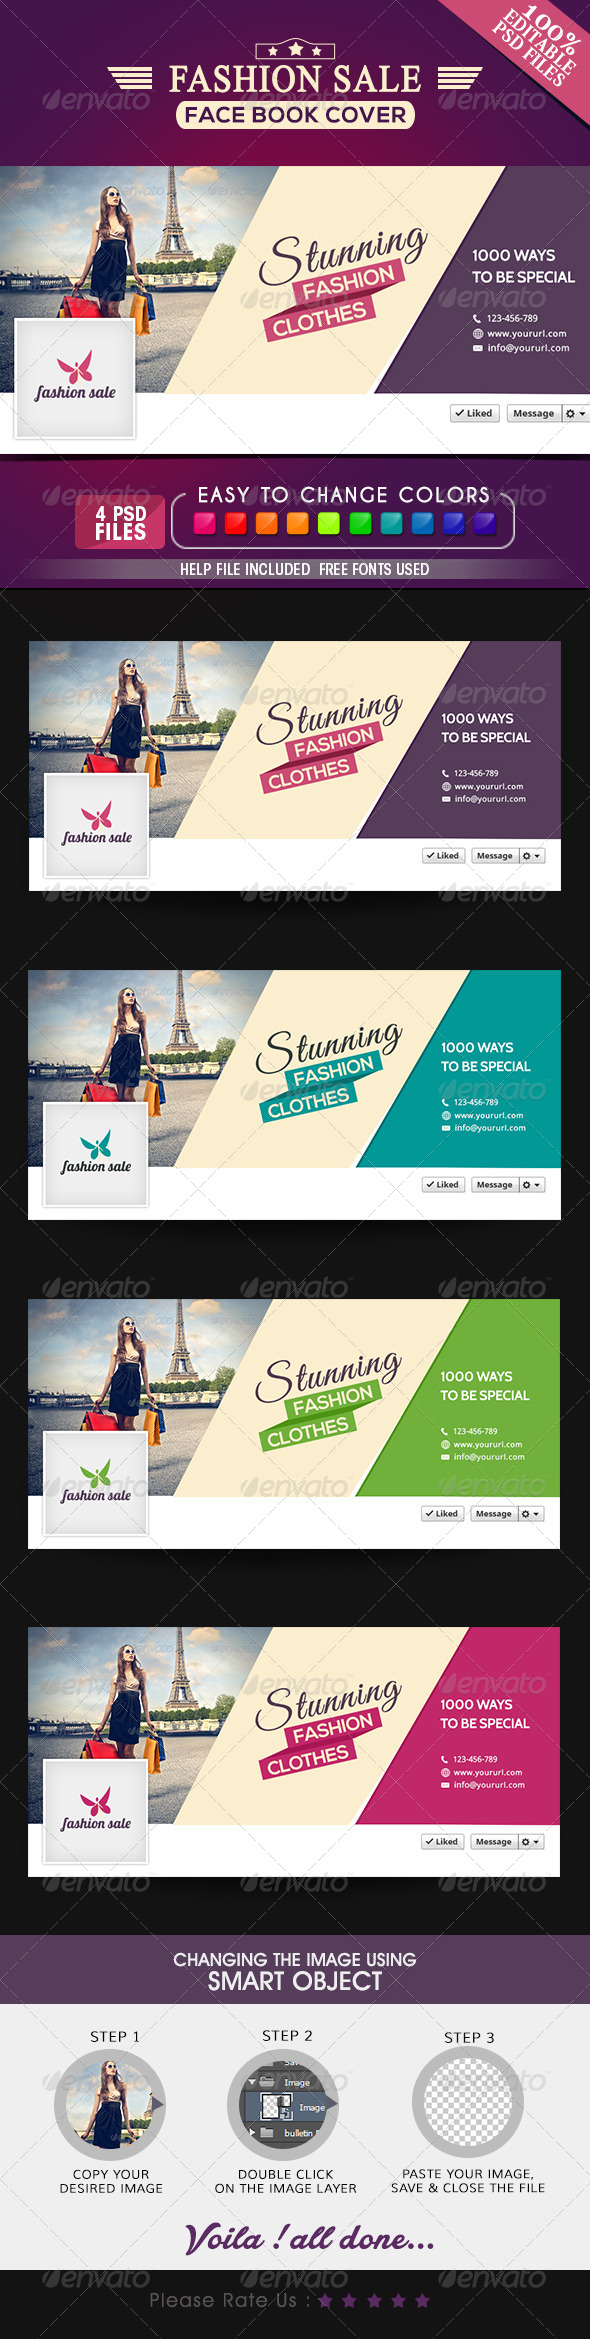 Facebook cover fashion graphics designs templates cheaphphosting Choice Image